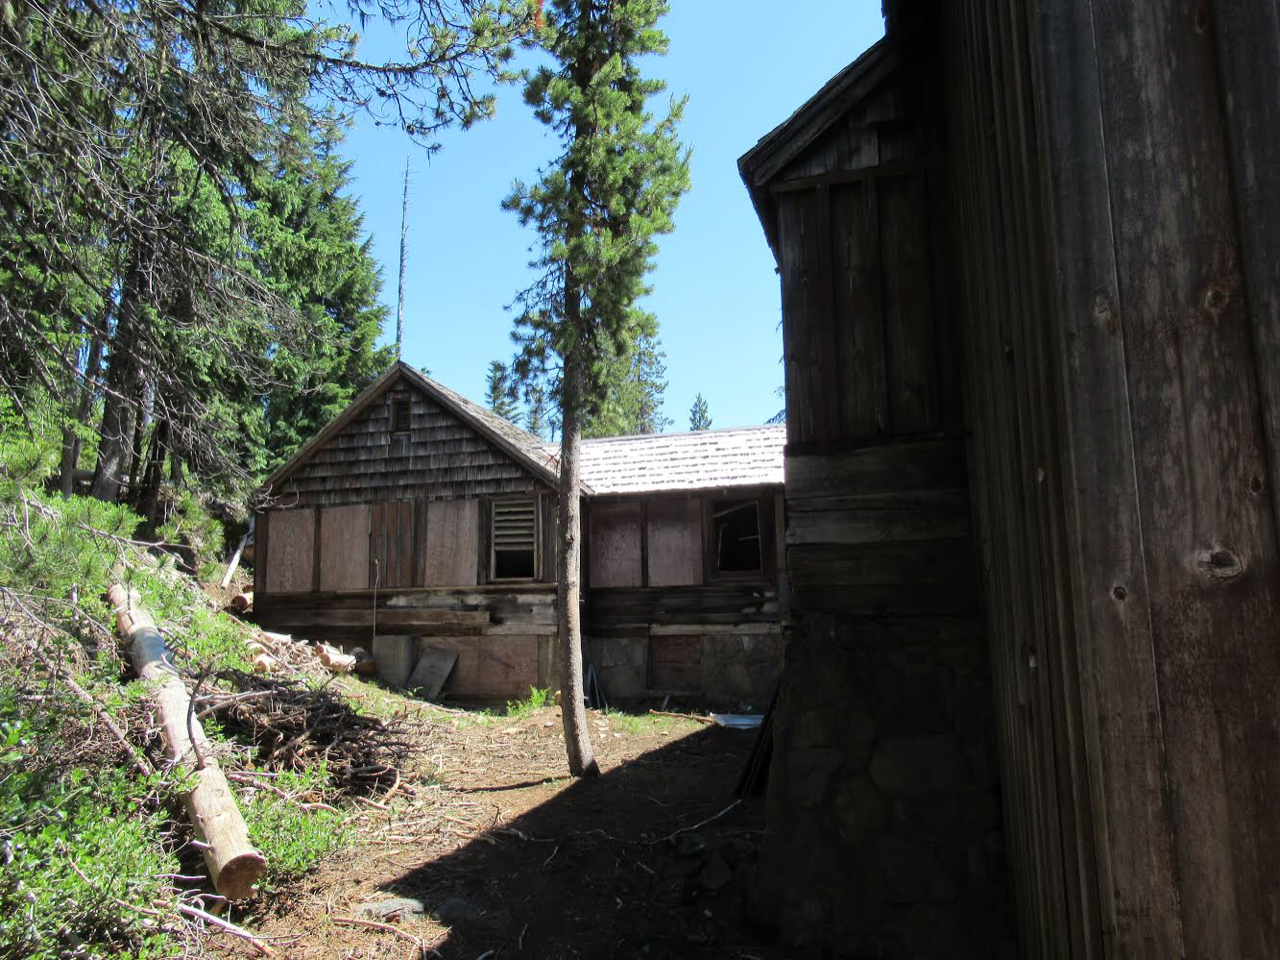 Santiam lodge a rustic historic building on national forest land